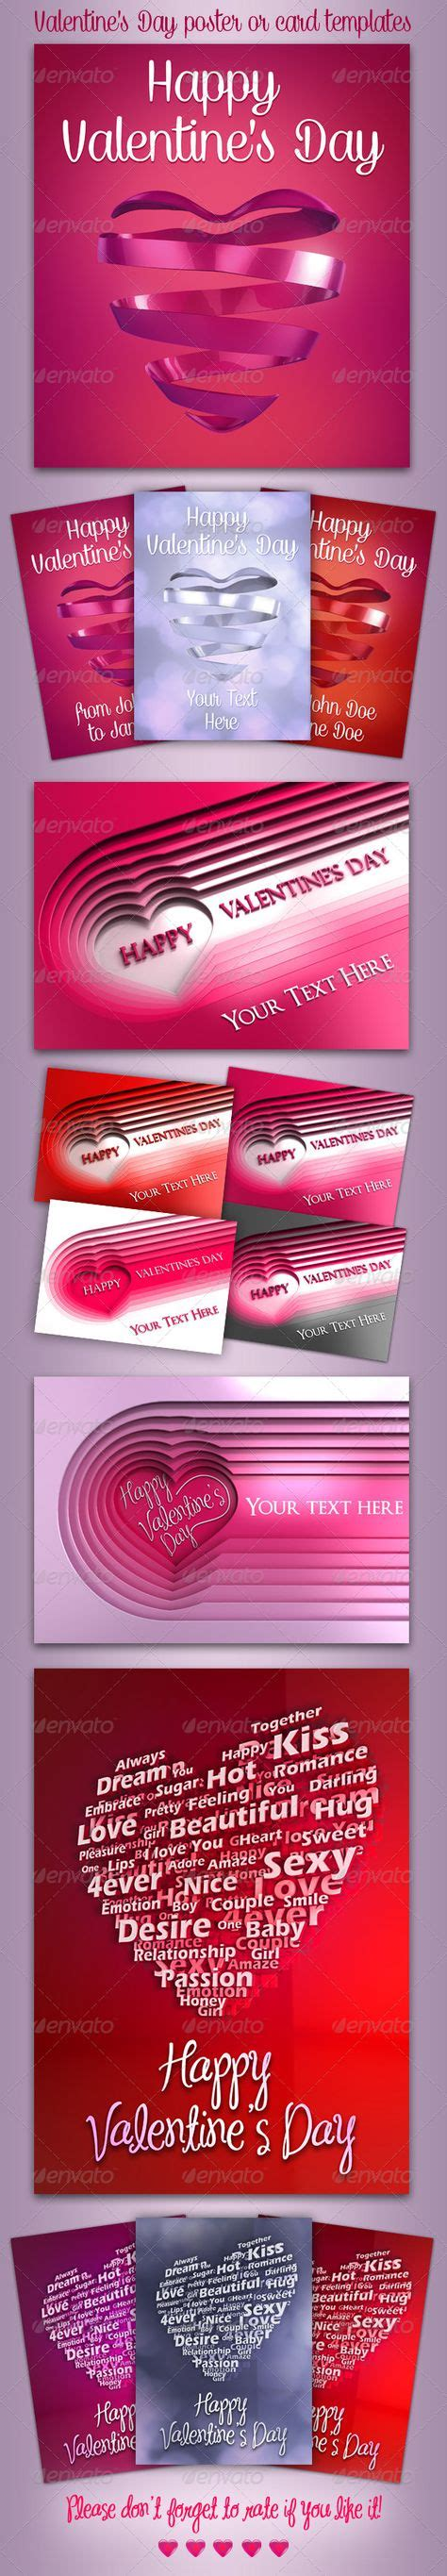 valentines day templates  images valentine day